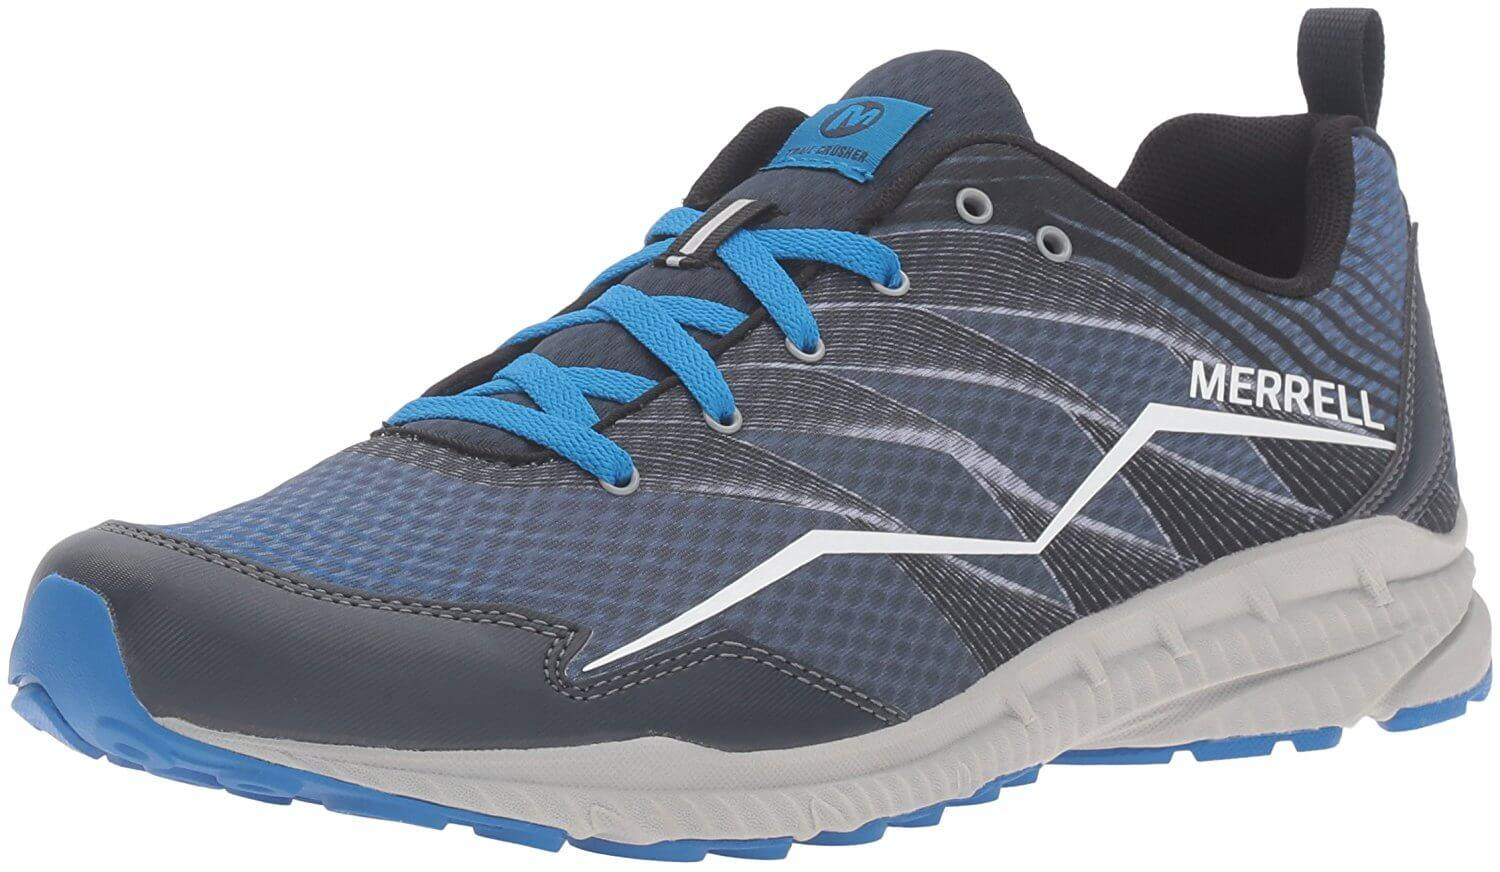 Merrell Trail Crusher Review - To buy